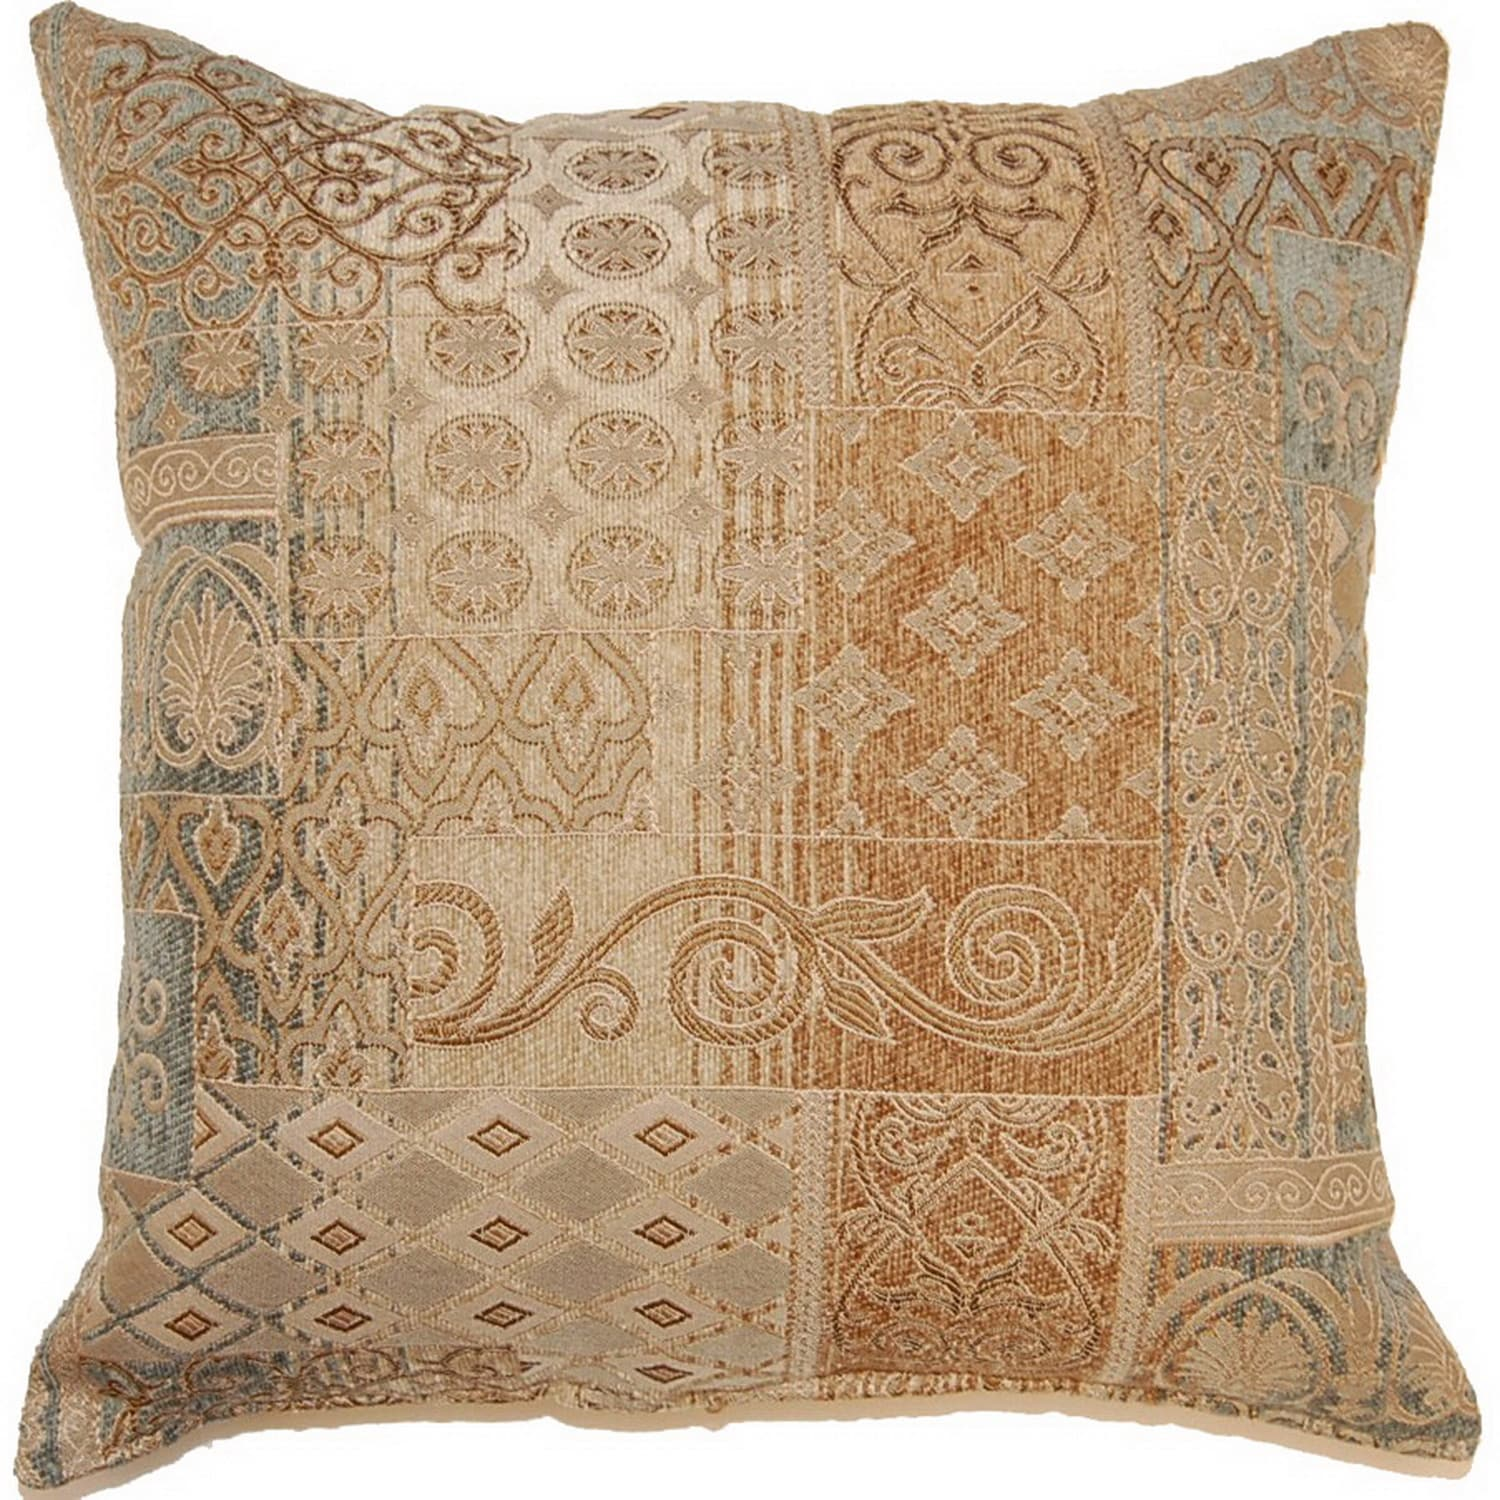 Fox Hill Trading Danville Sandalwood 17-inch Throw Pillows (Set of 2)